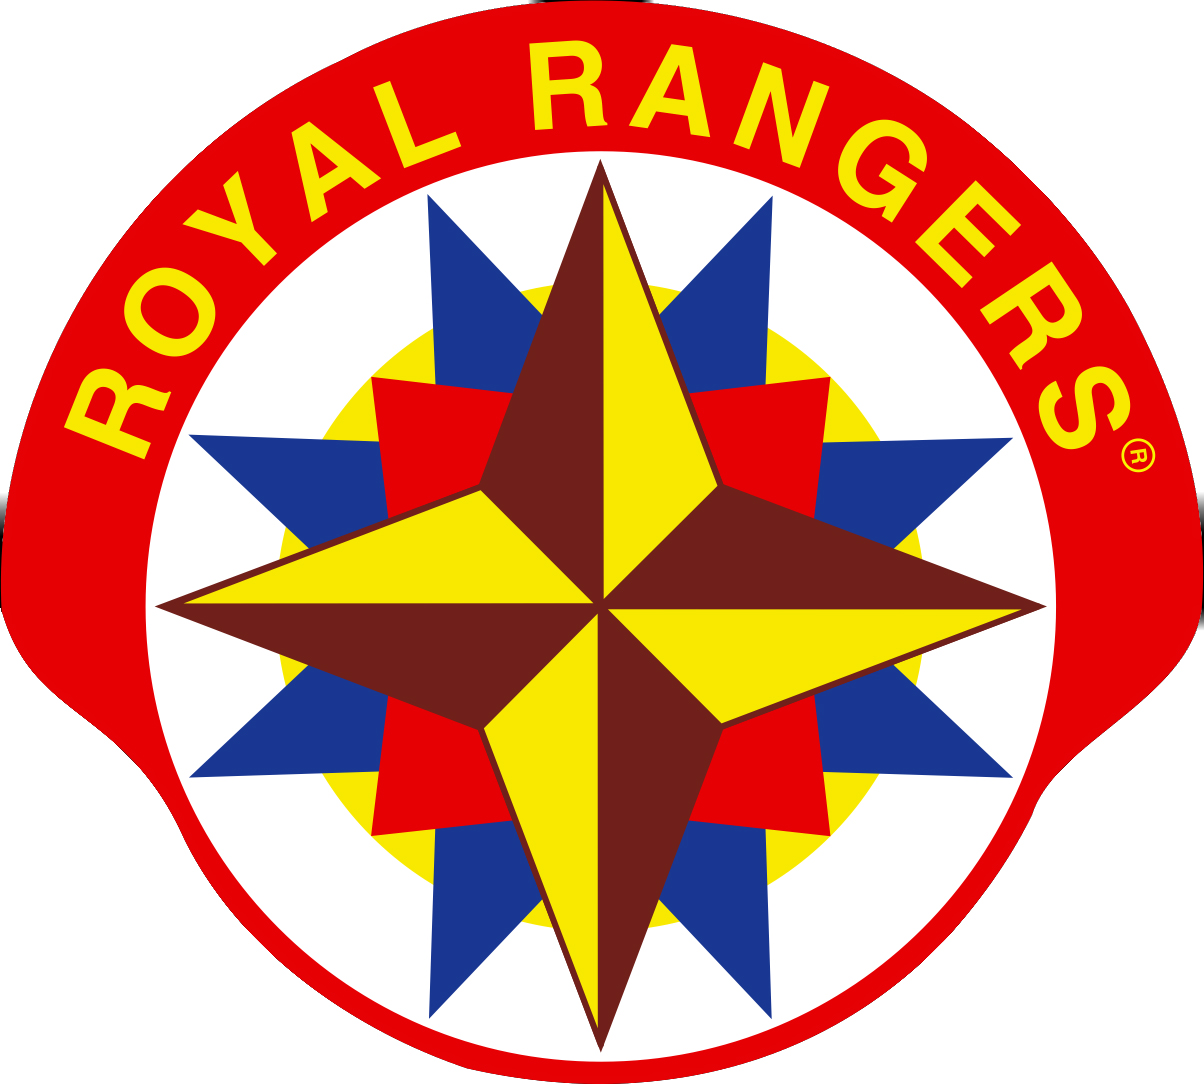 LOGO_Royal Rangers.jpg